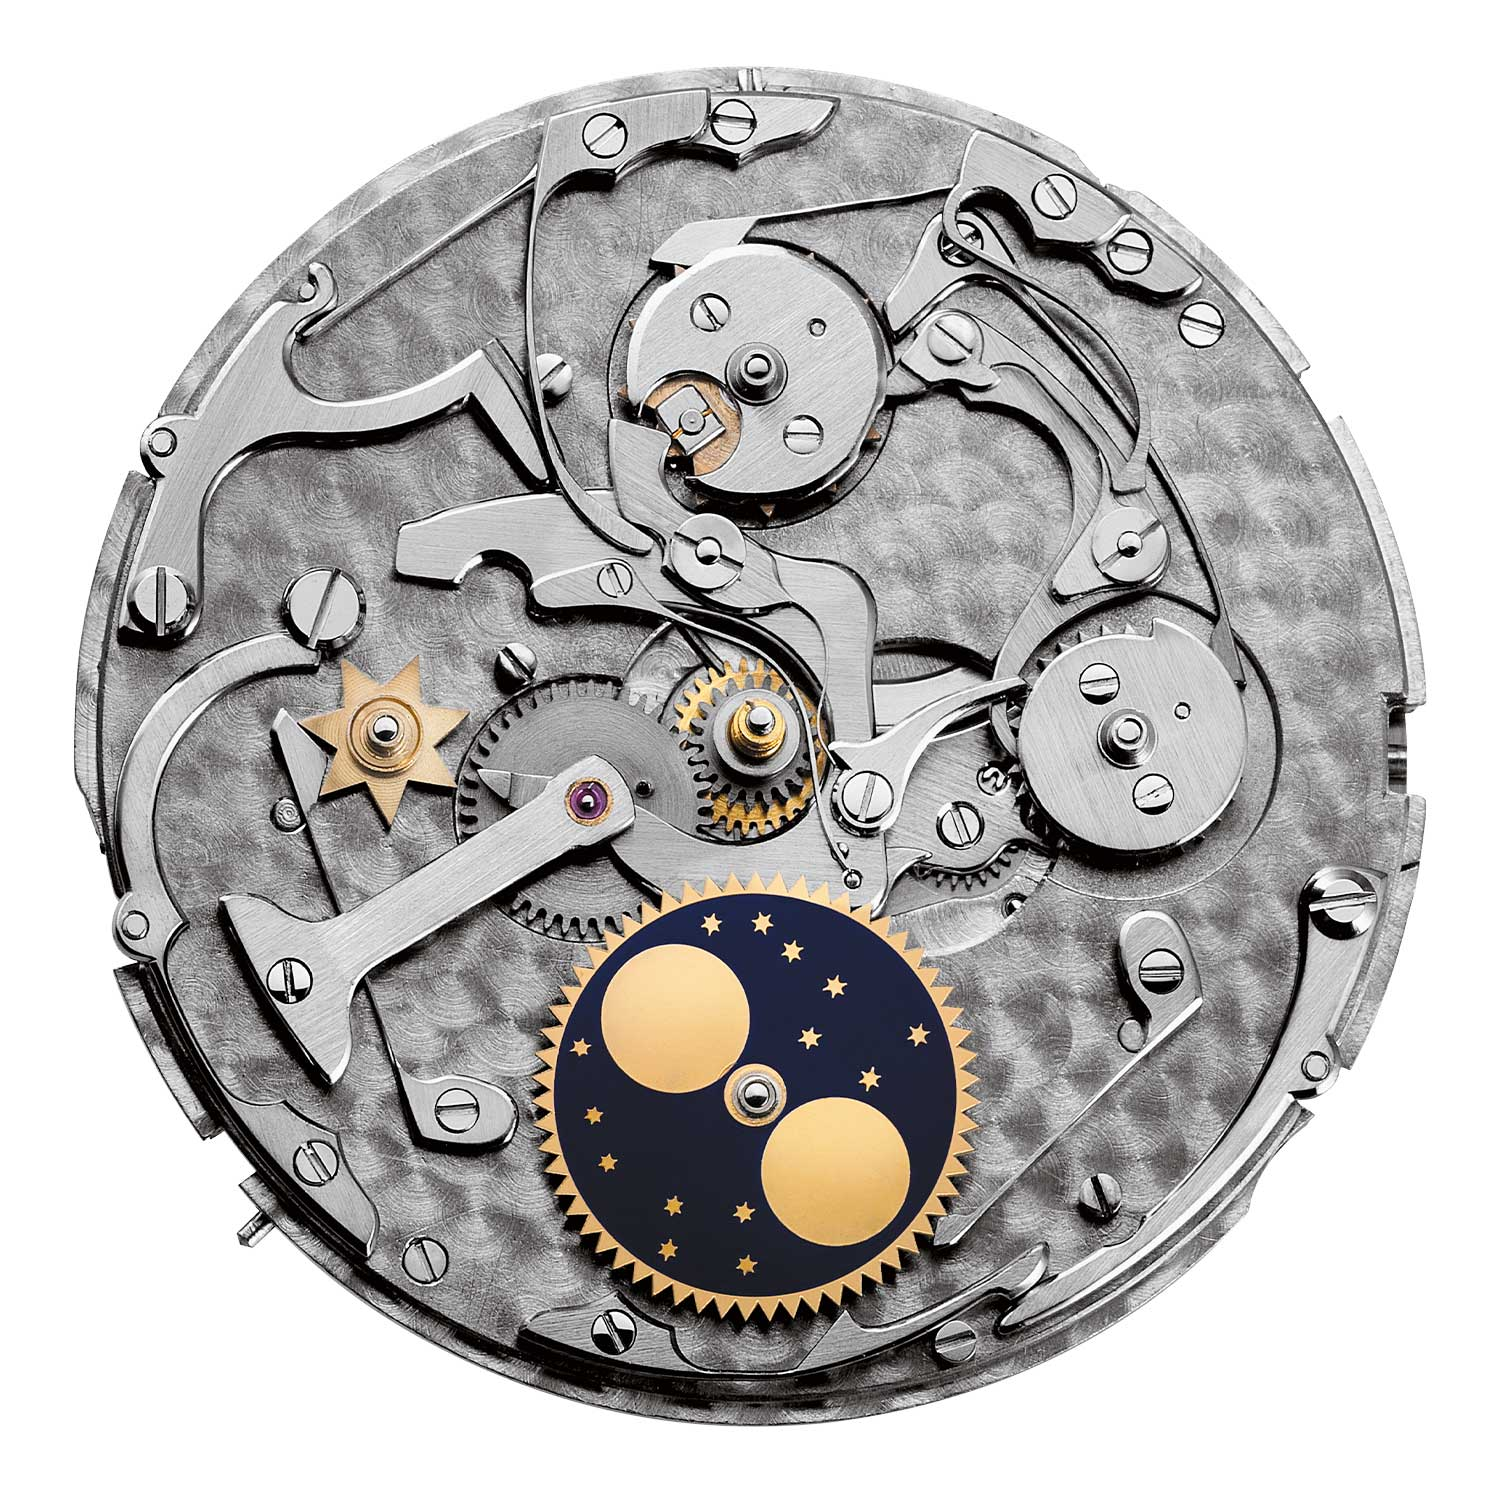 A view of what is under the dial for watches powered by the 2120/2800 movement